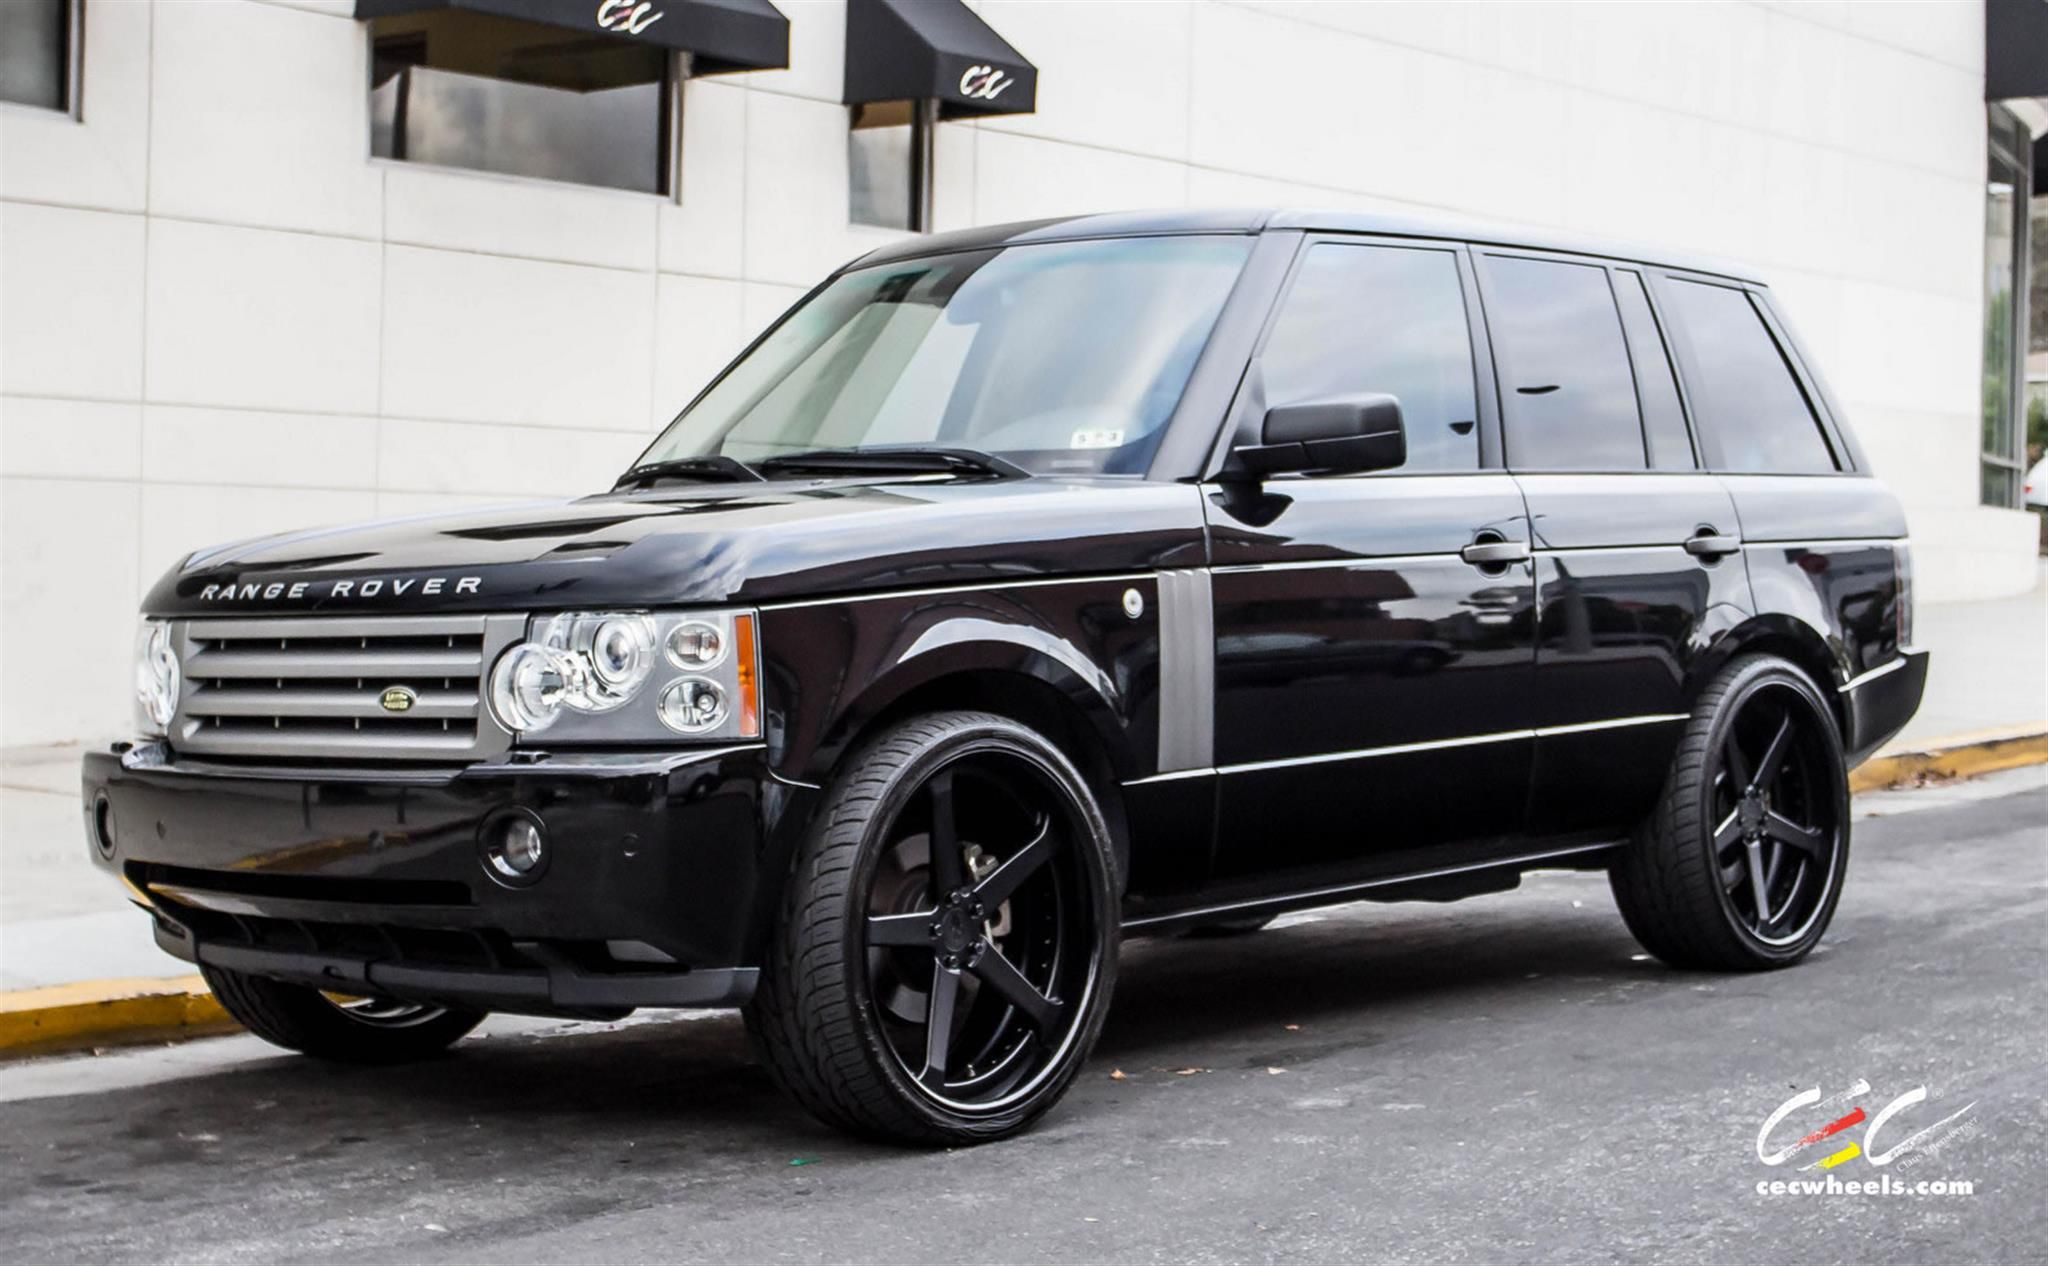 2006 Range Rover HSE by CEC in Los Angeles CA to view more